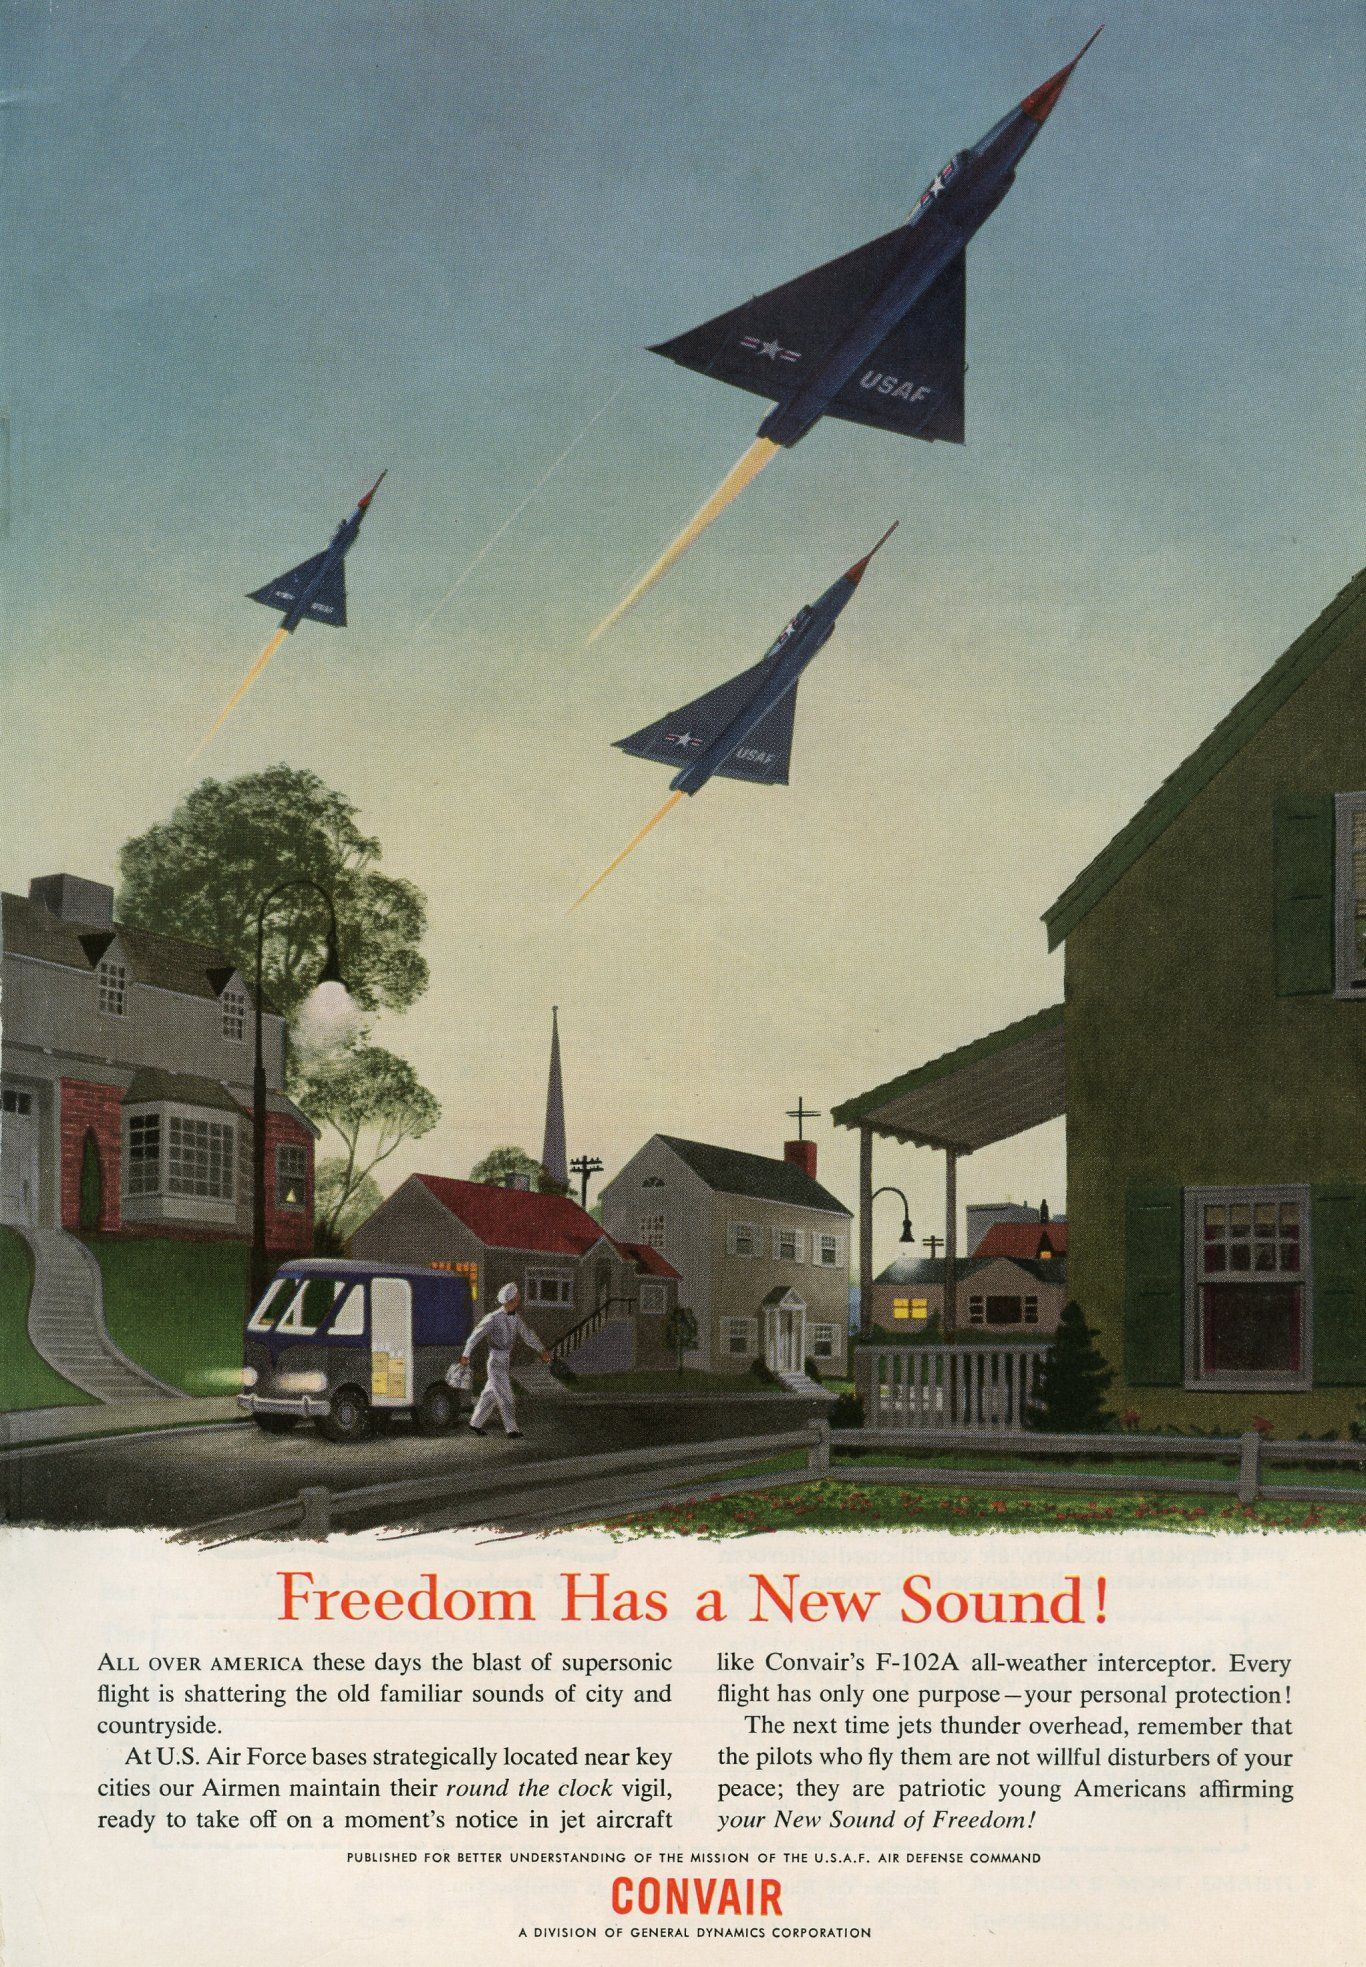 Freedom Has a New Sound! [1955] vintageads Ads vintage